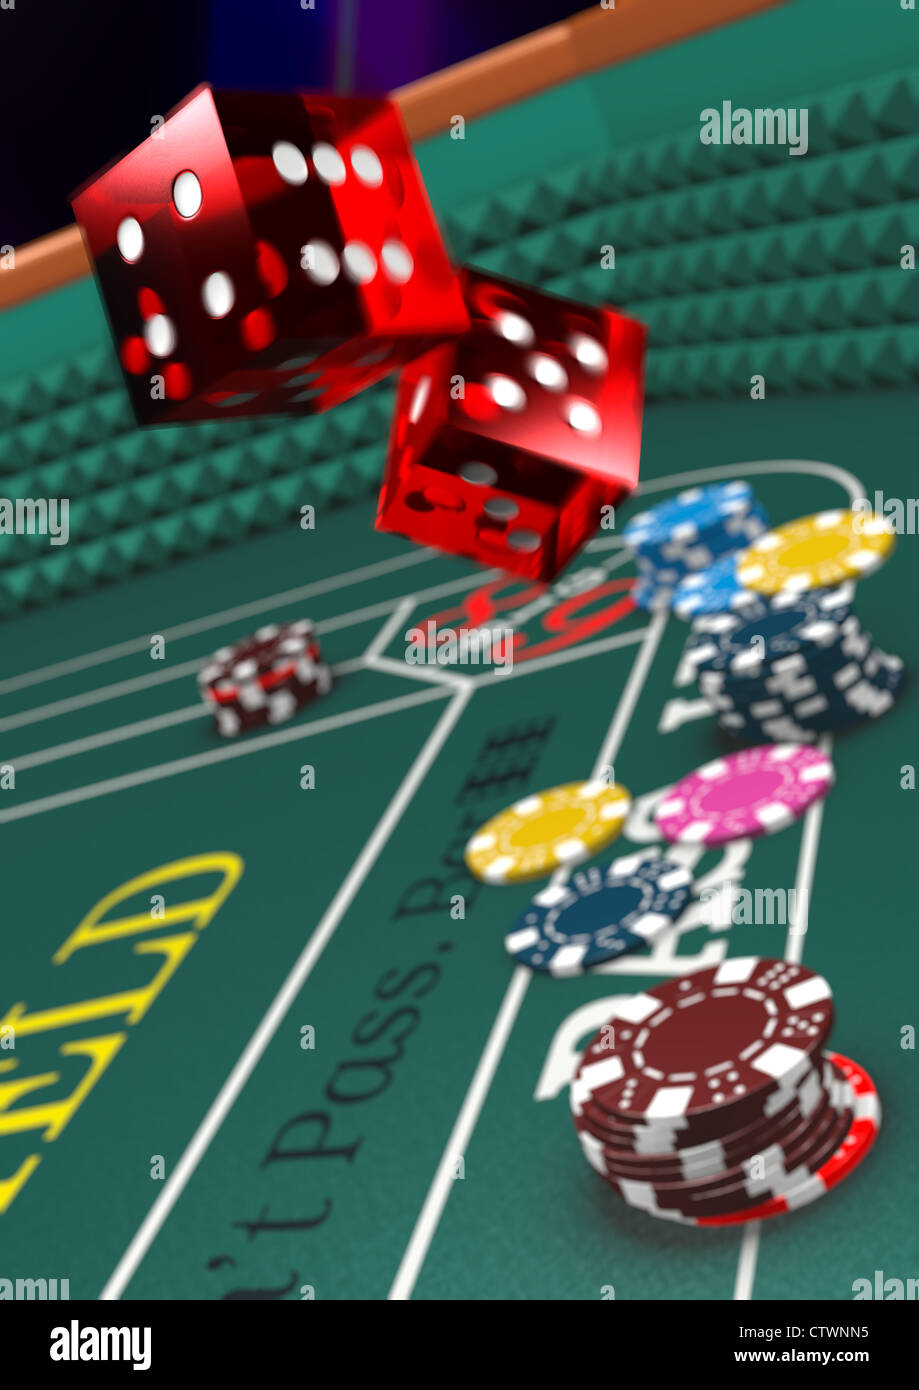 Casino craps table and dice - Stock Image